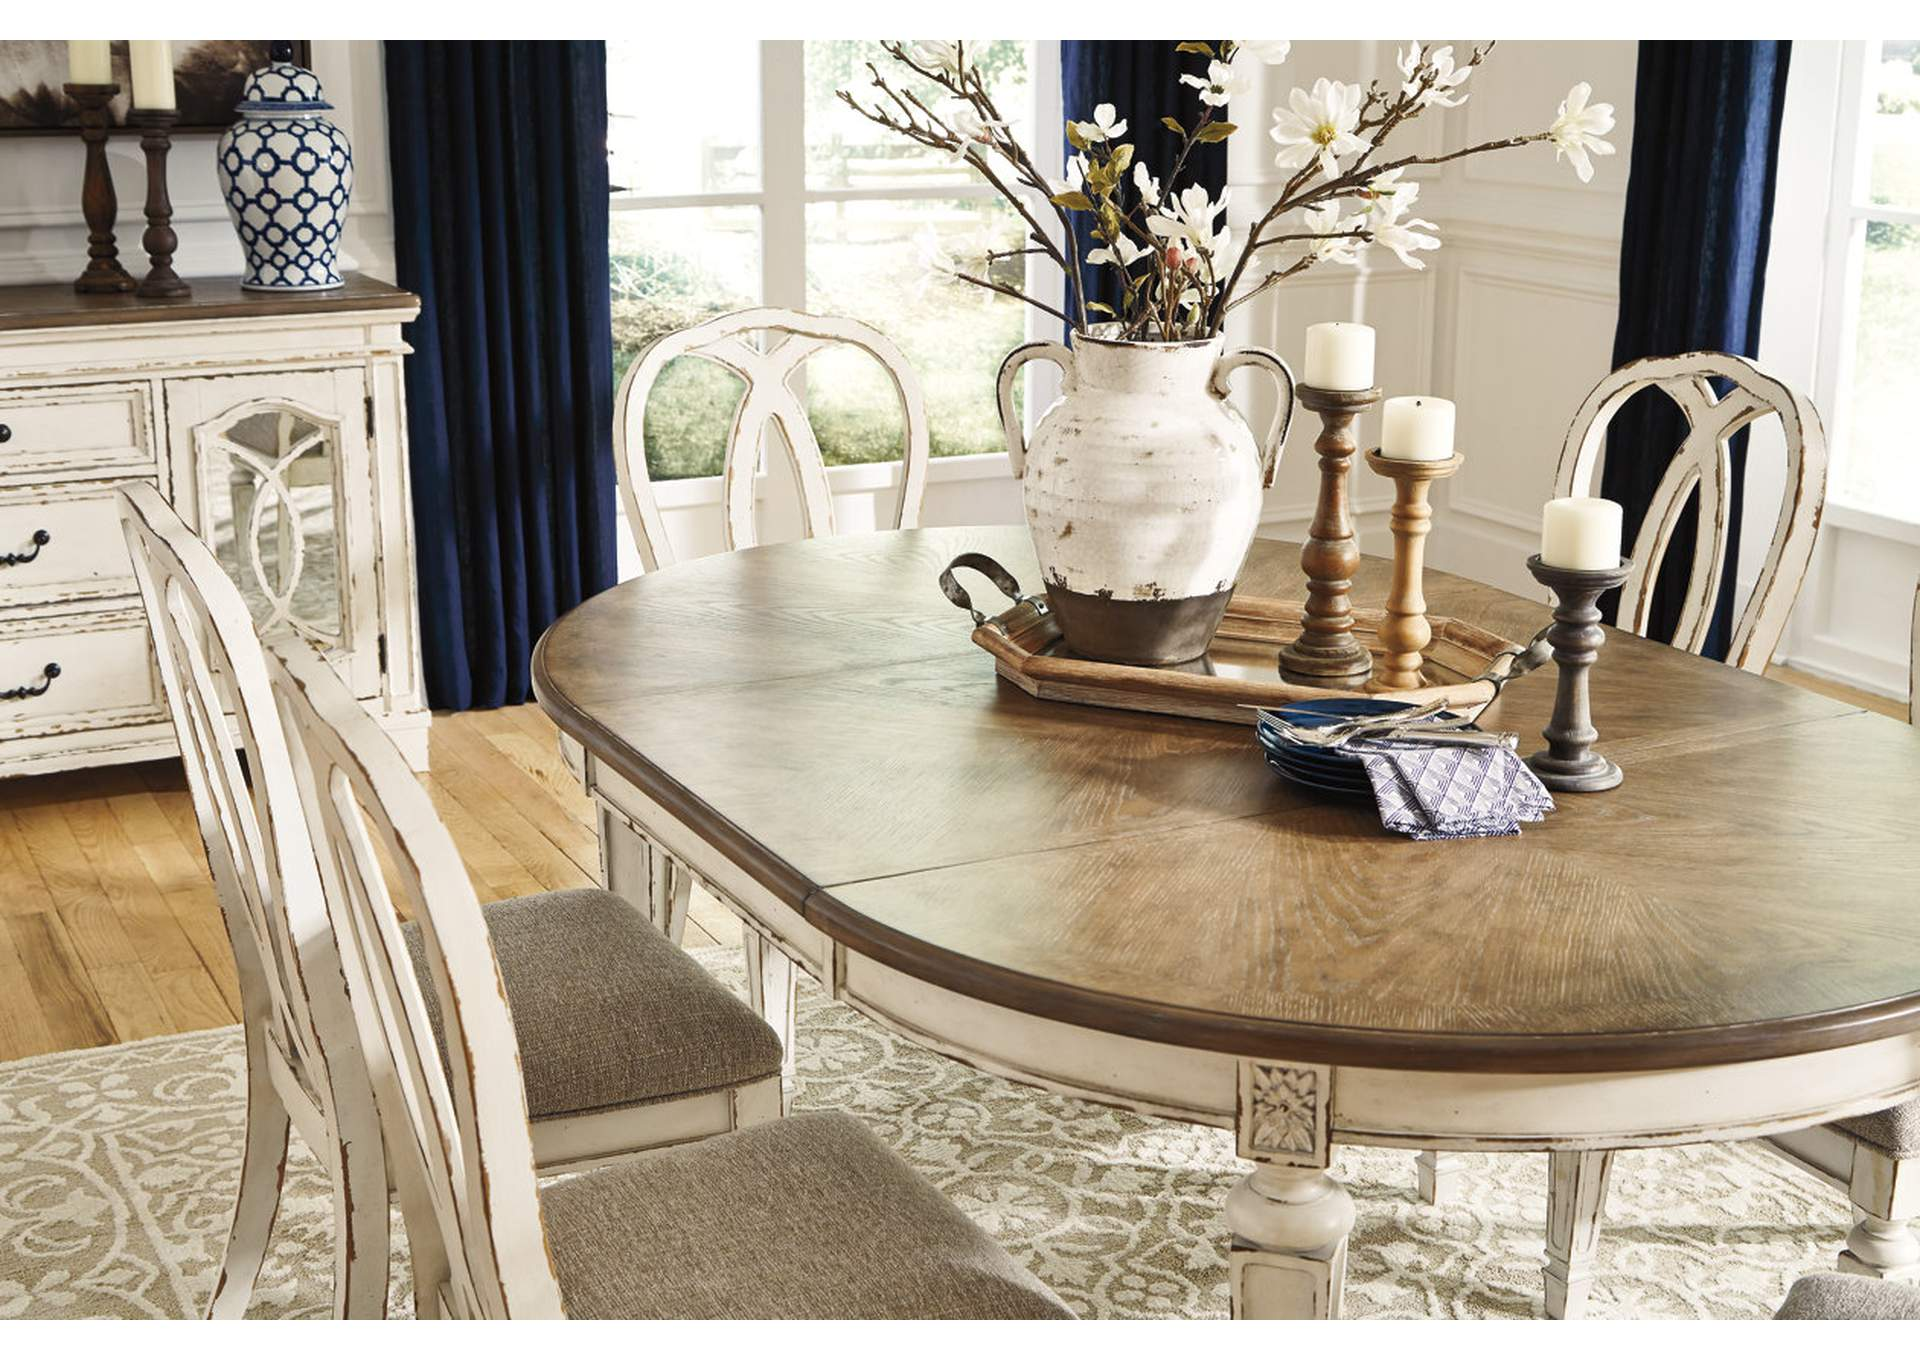 Realyn Dining Room Extension Table Ashley Furniture Homestore Independently Owned And Operated By Hamad M Al Rugaib Sons Trading Co